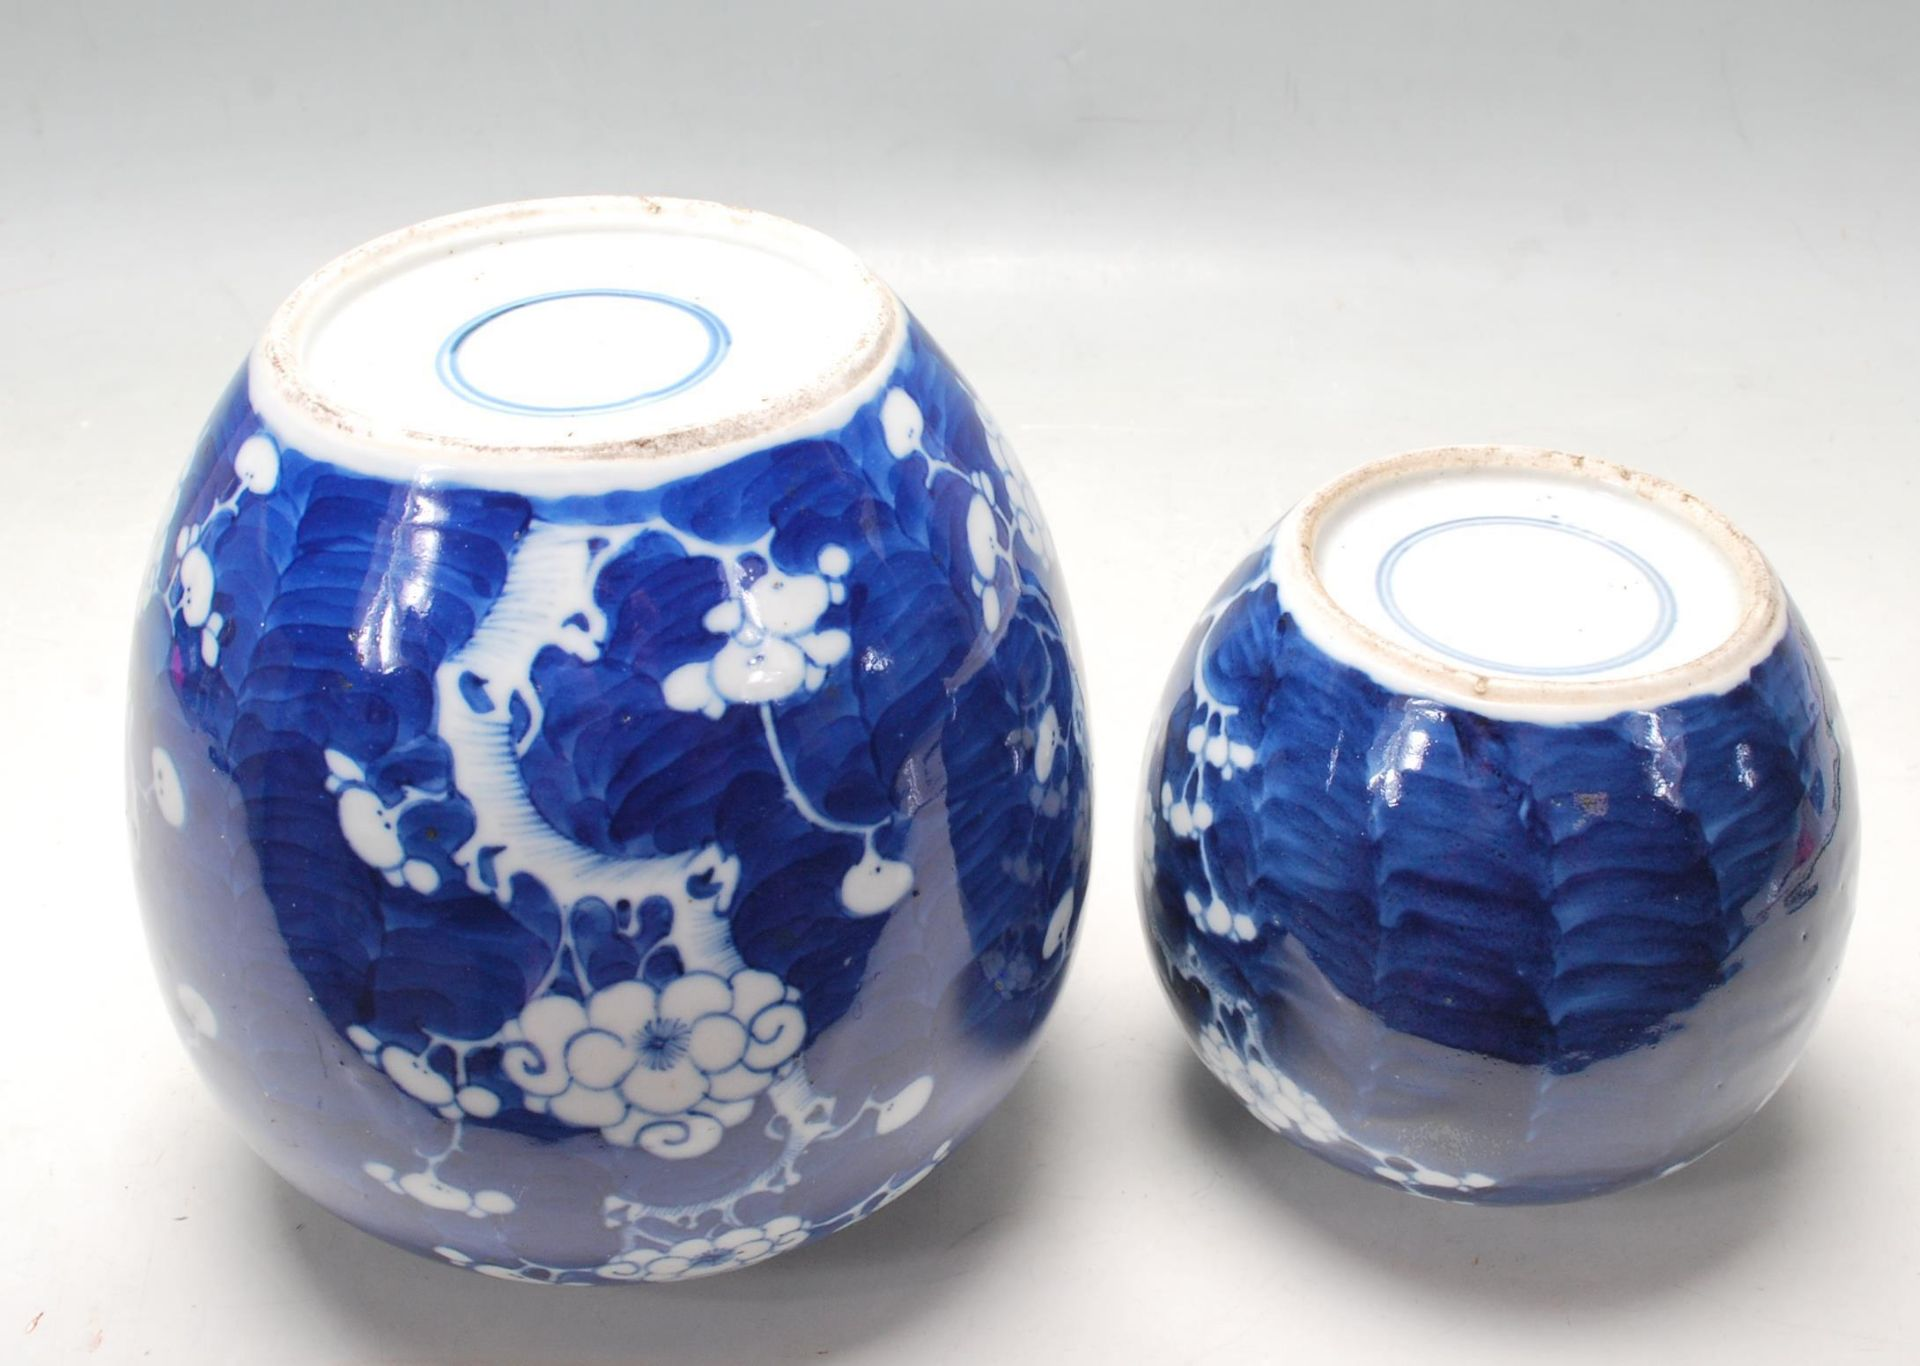 TWO ANTIQUE EARLY 20TH CENTURY CHINESE BLUE AND WHITE GINGER AND JARS - Image 6 of 8